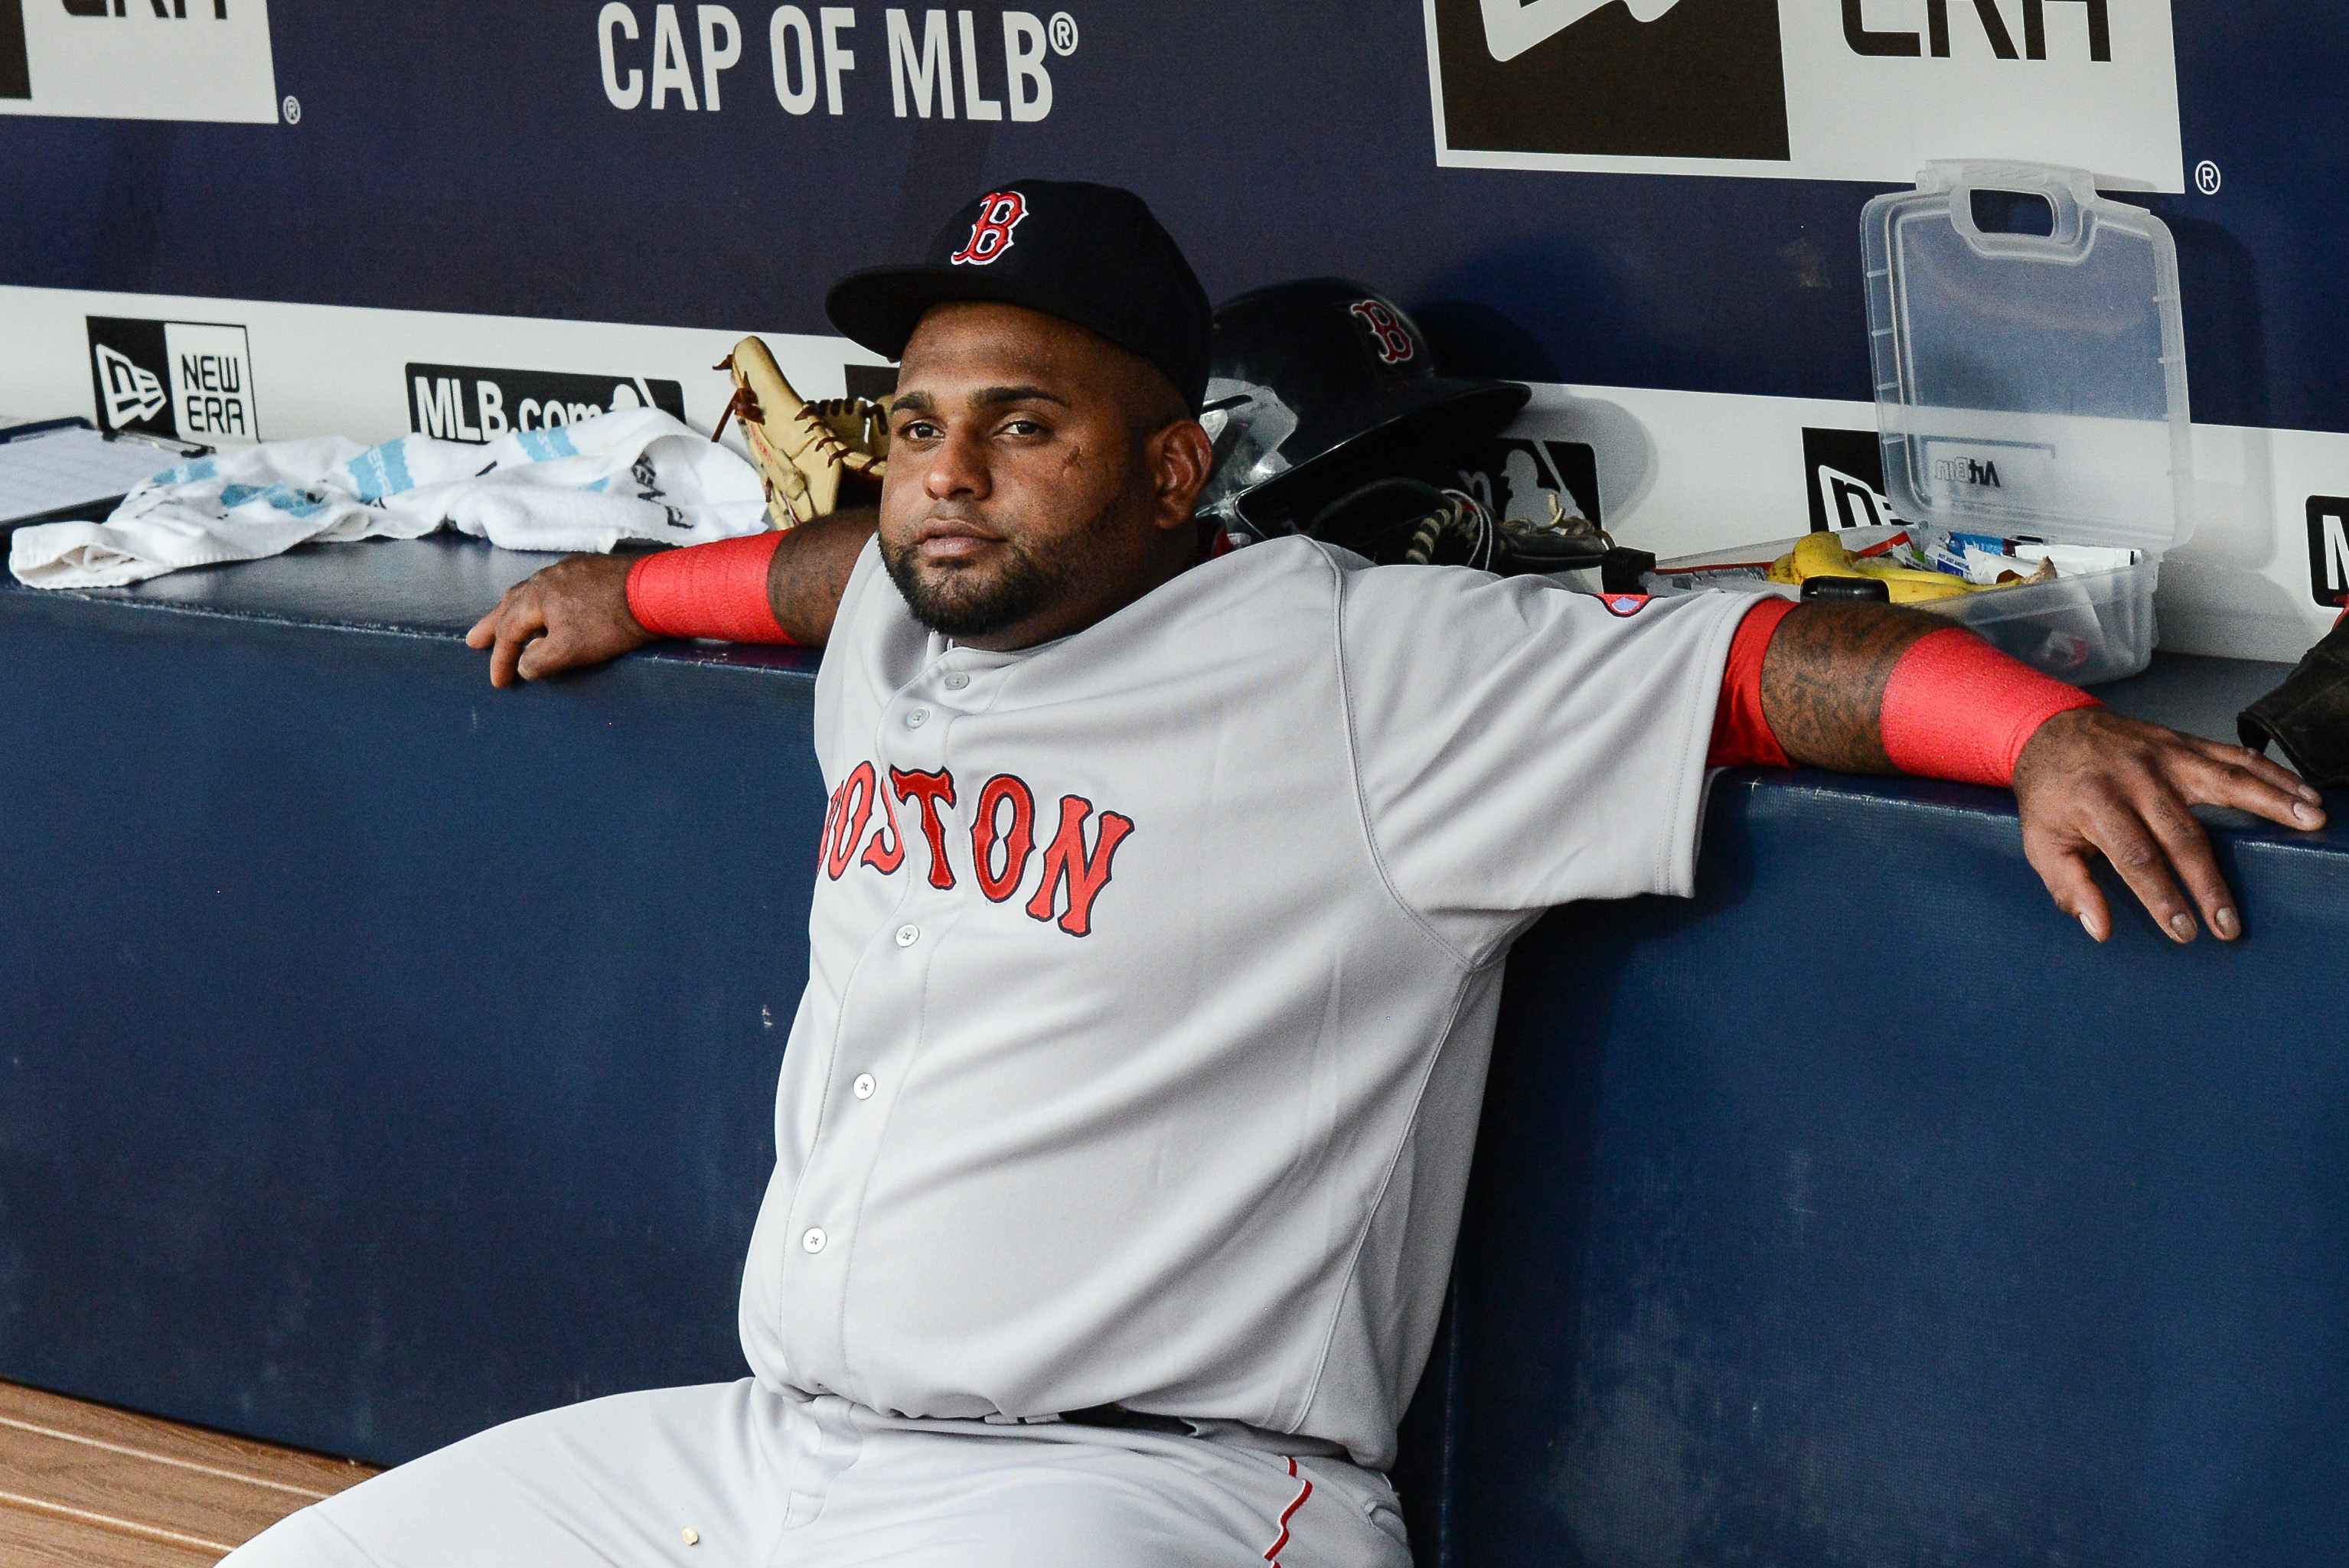 Boston Red Sox third baseman Pablo Sandoval (48) was benched before the start of a baseball game against the Atlanta Braves on June 18, 2015